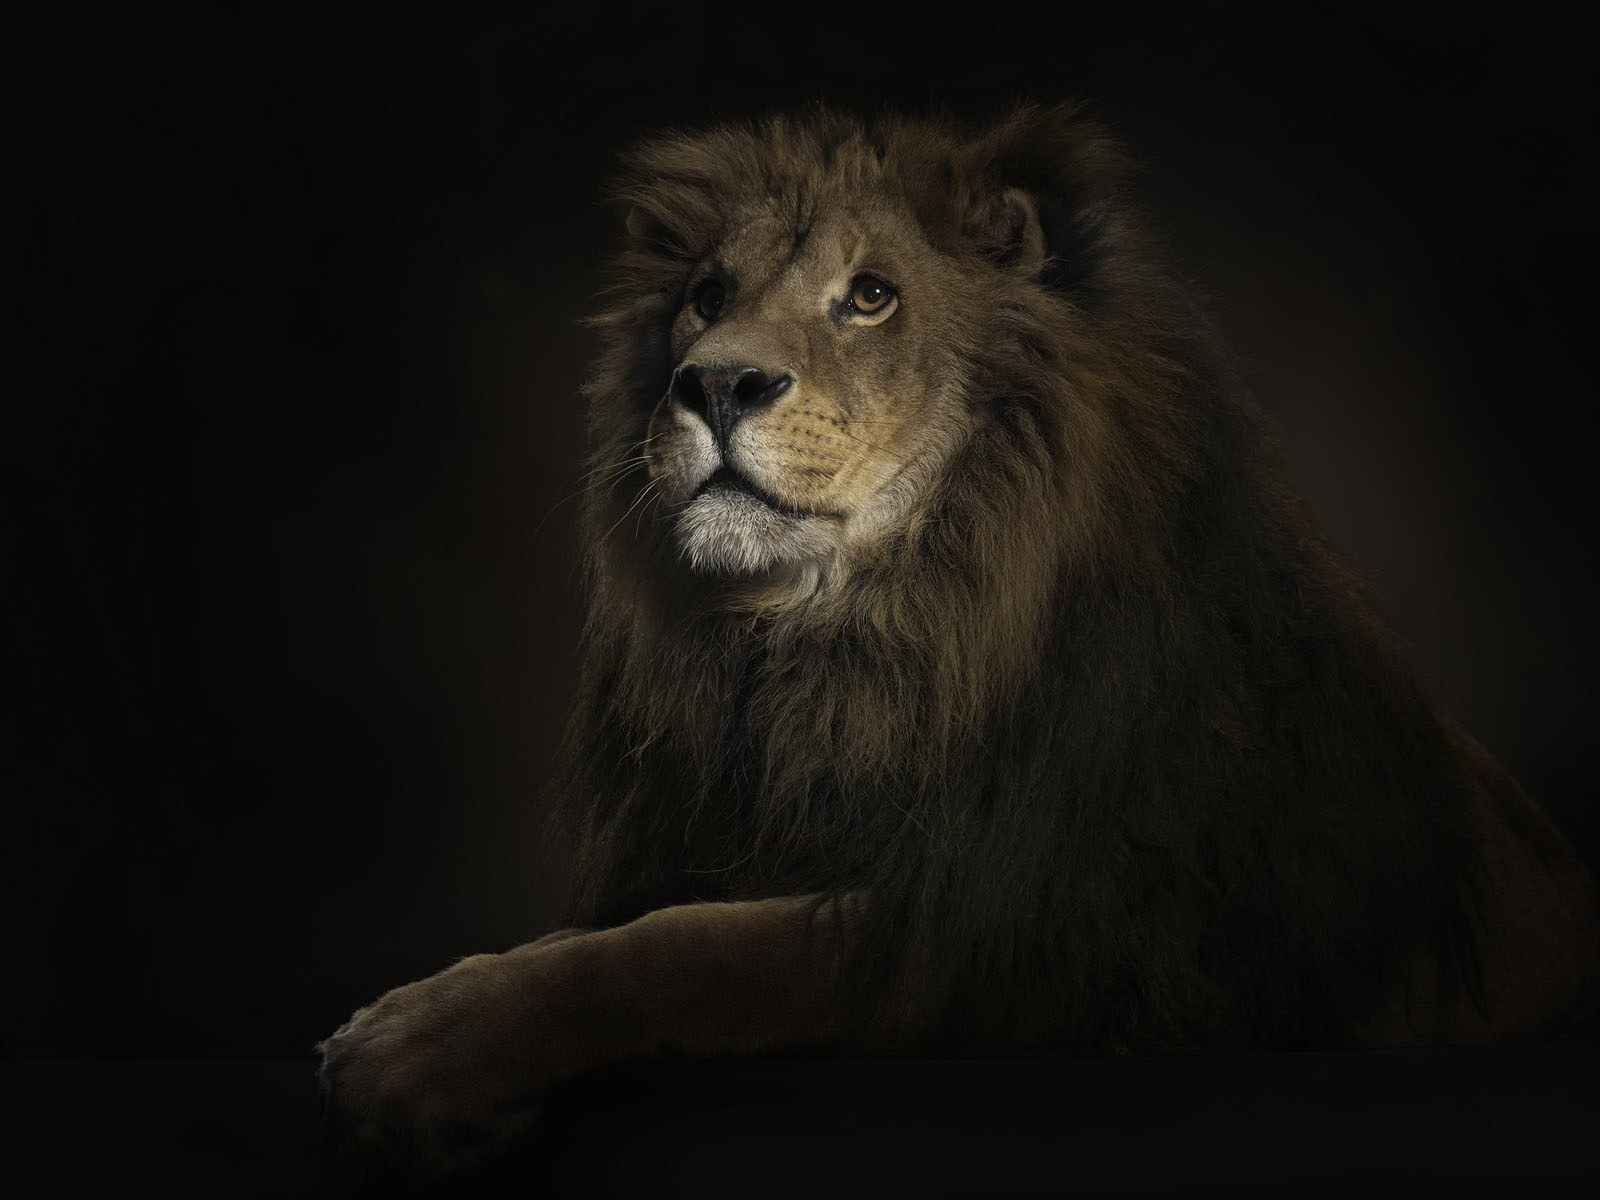 Lion Wallpaper HD